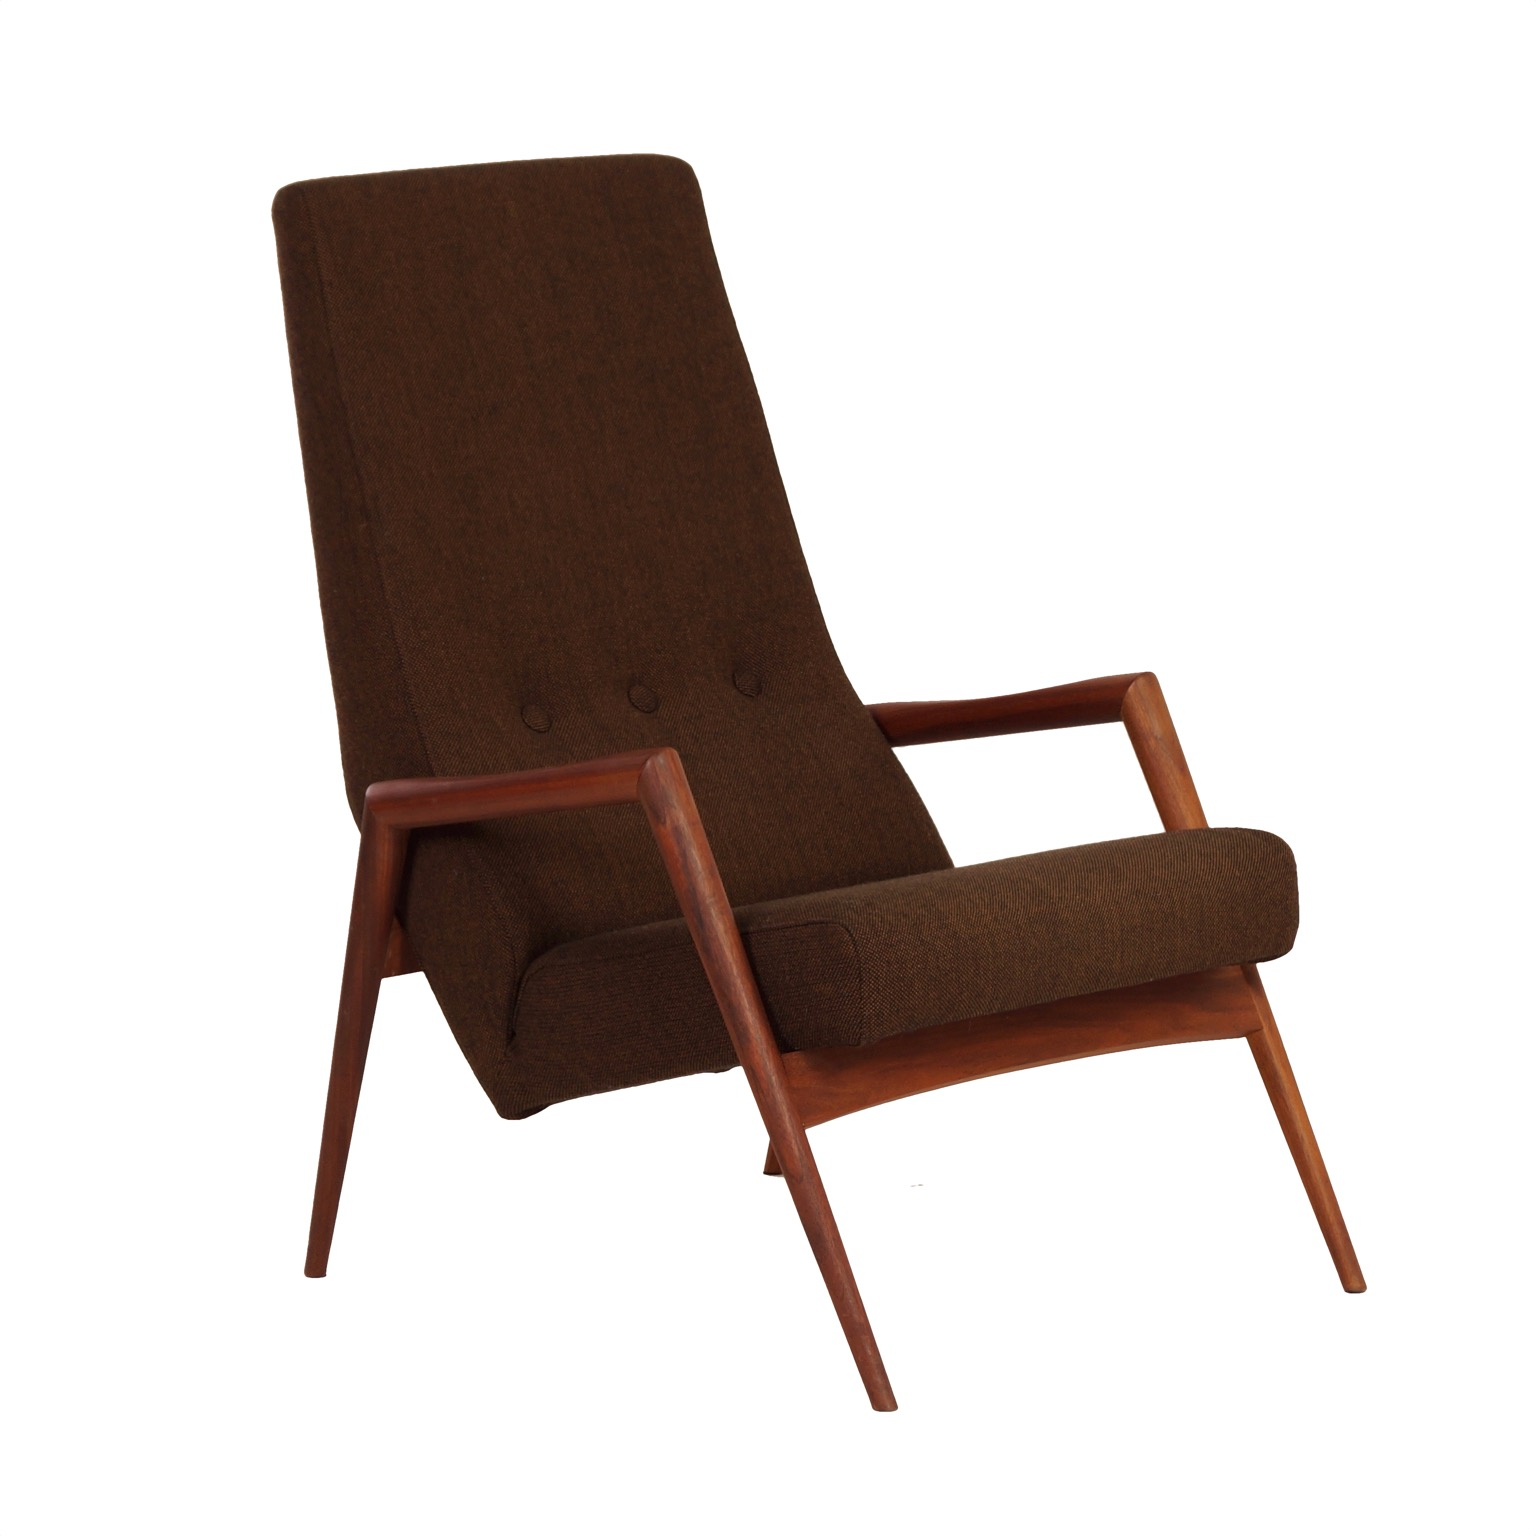 Rob Parry Fauteuils.Armchair Triennale By Rob Parry For Gelderland Design 1950s